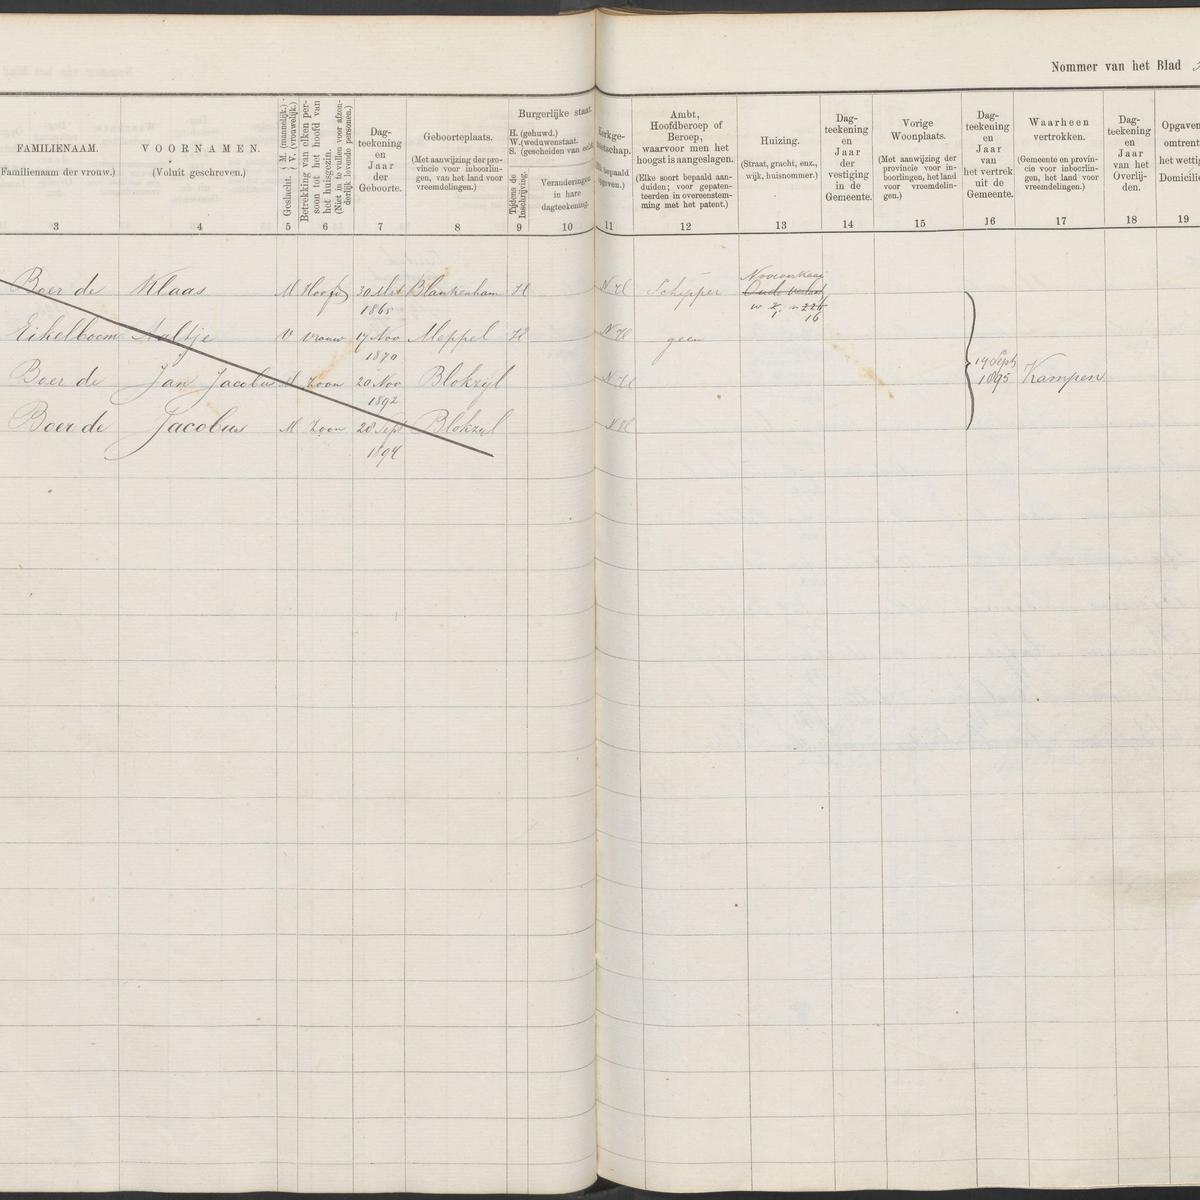 Civil registry, Steenwijkerland, 1890-1905, A-J, archive 8, inventory number 18, folio 57